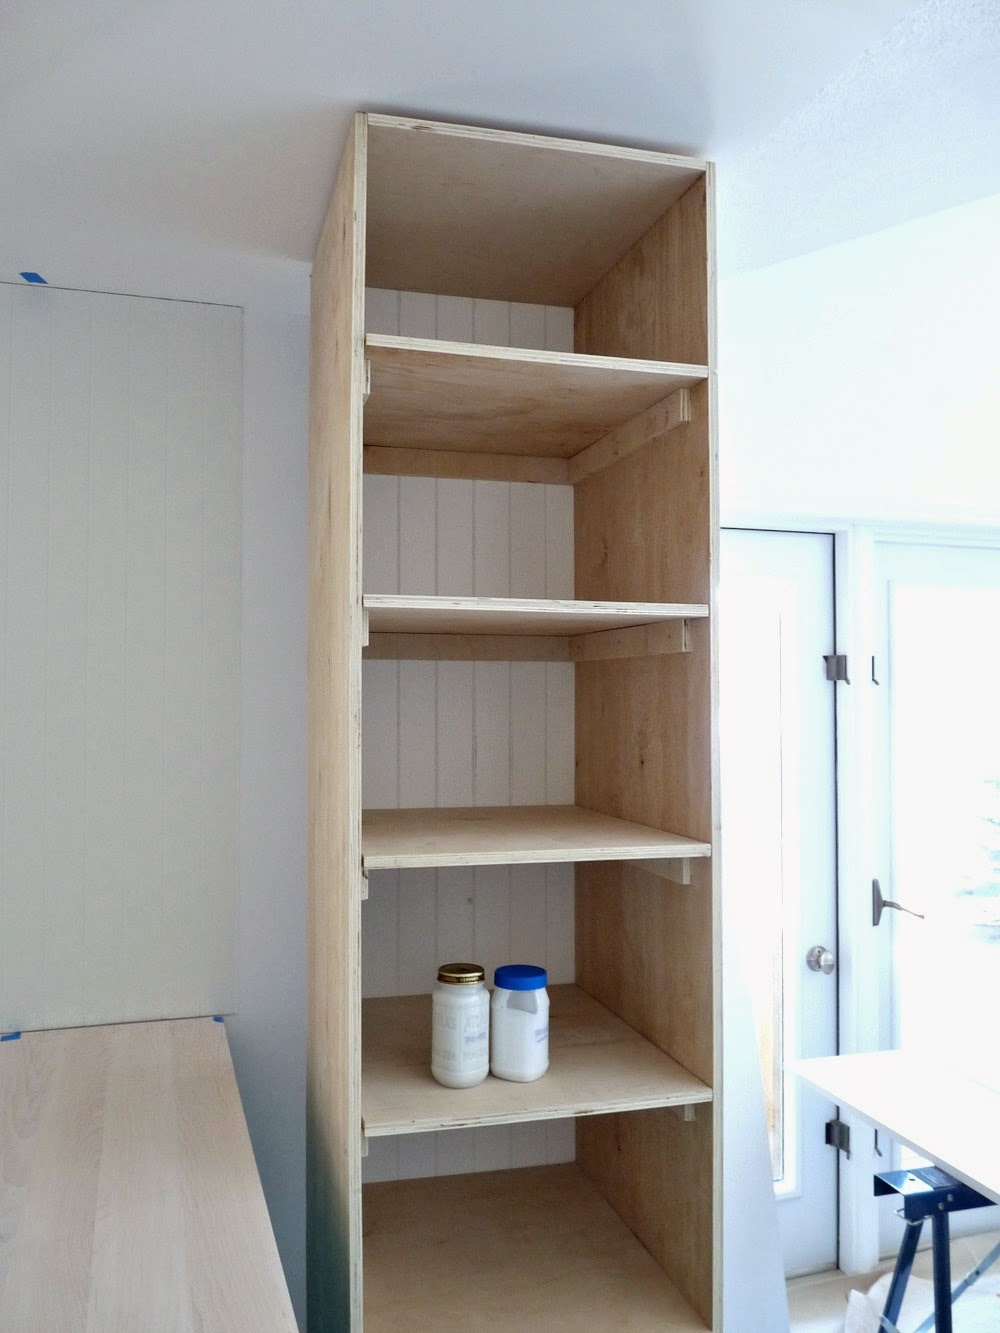 DIY Plywood Pantry with Shelves